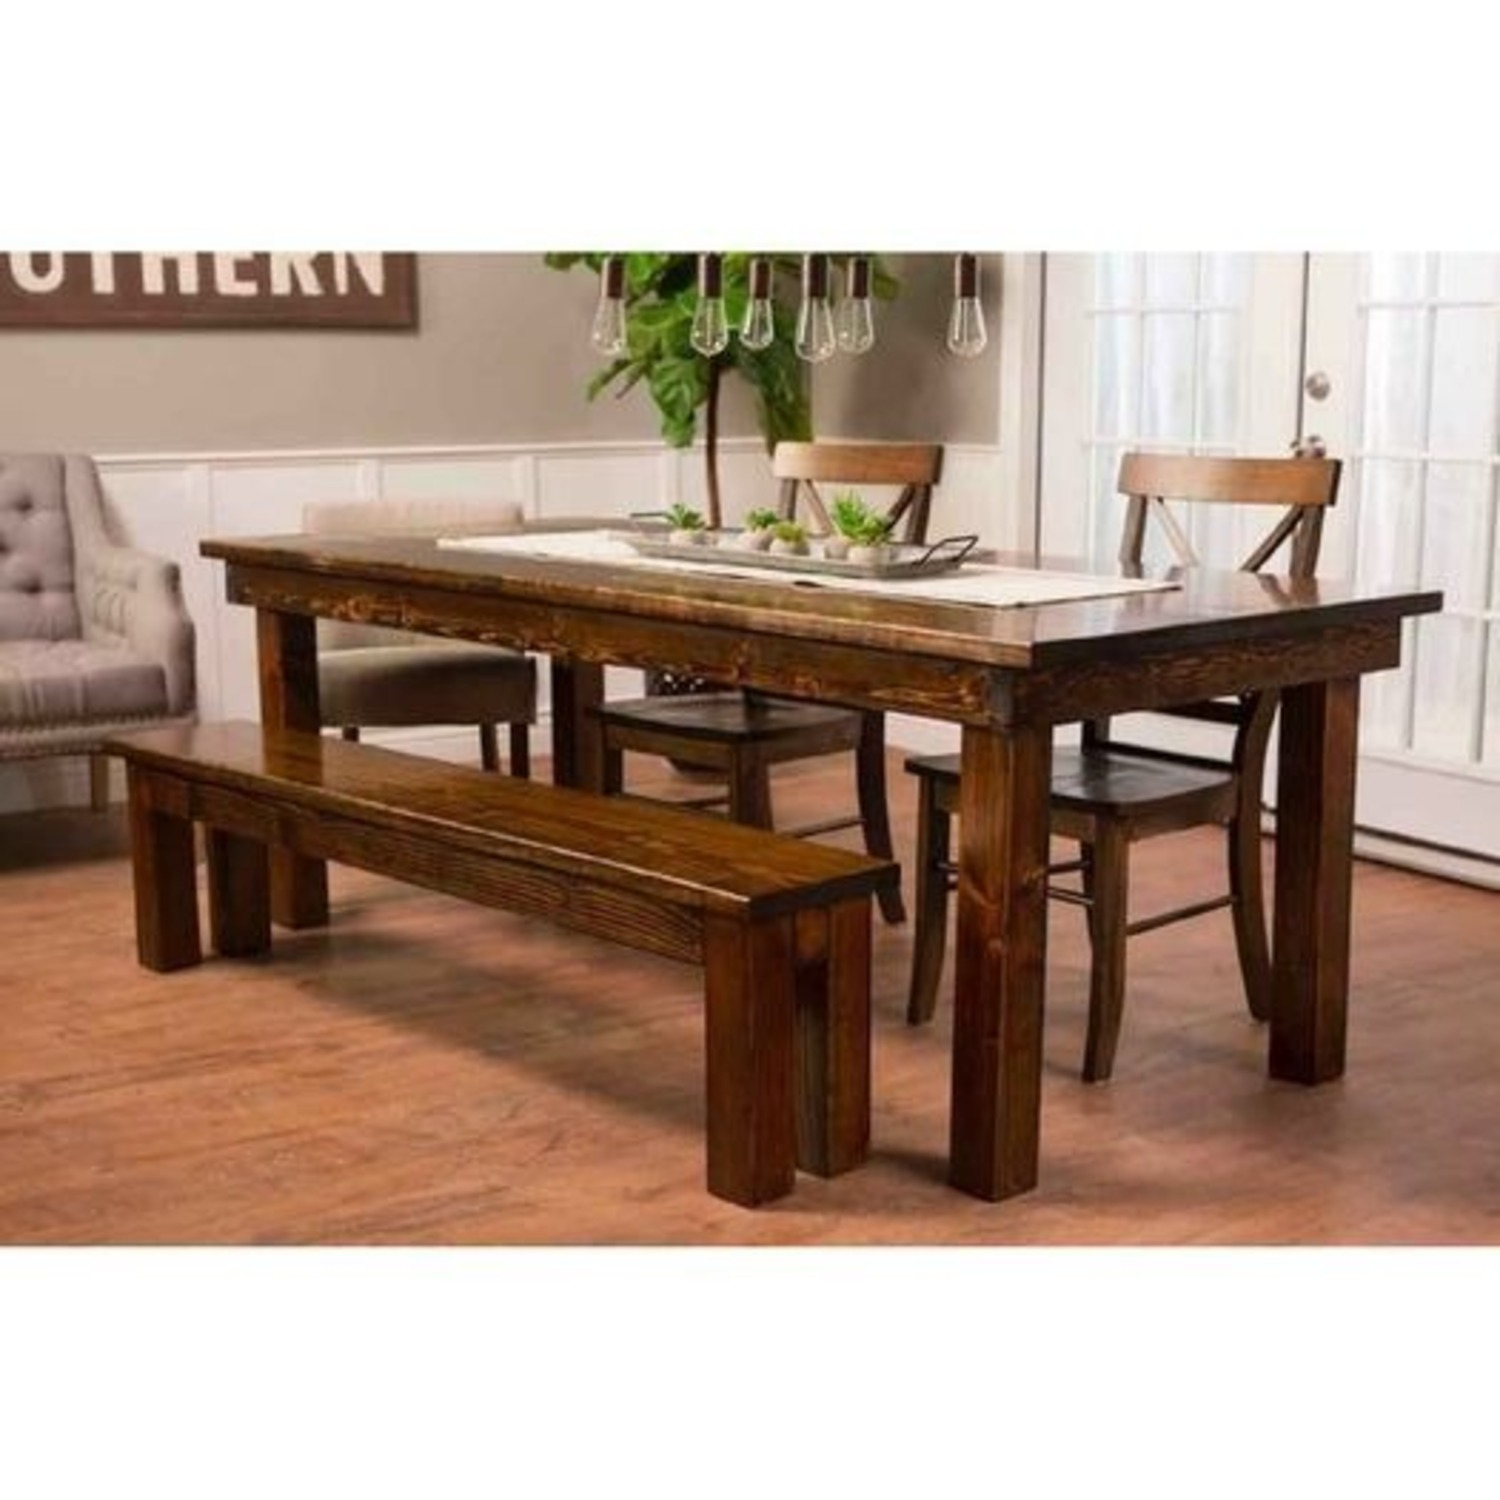 Farmhouse Dining Room Set with Matching Benches - image-3